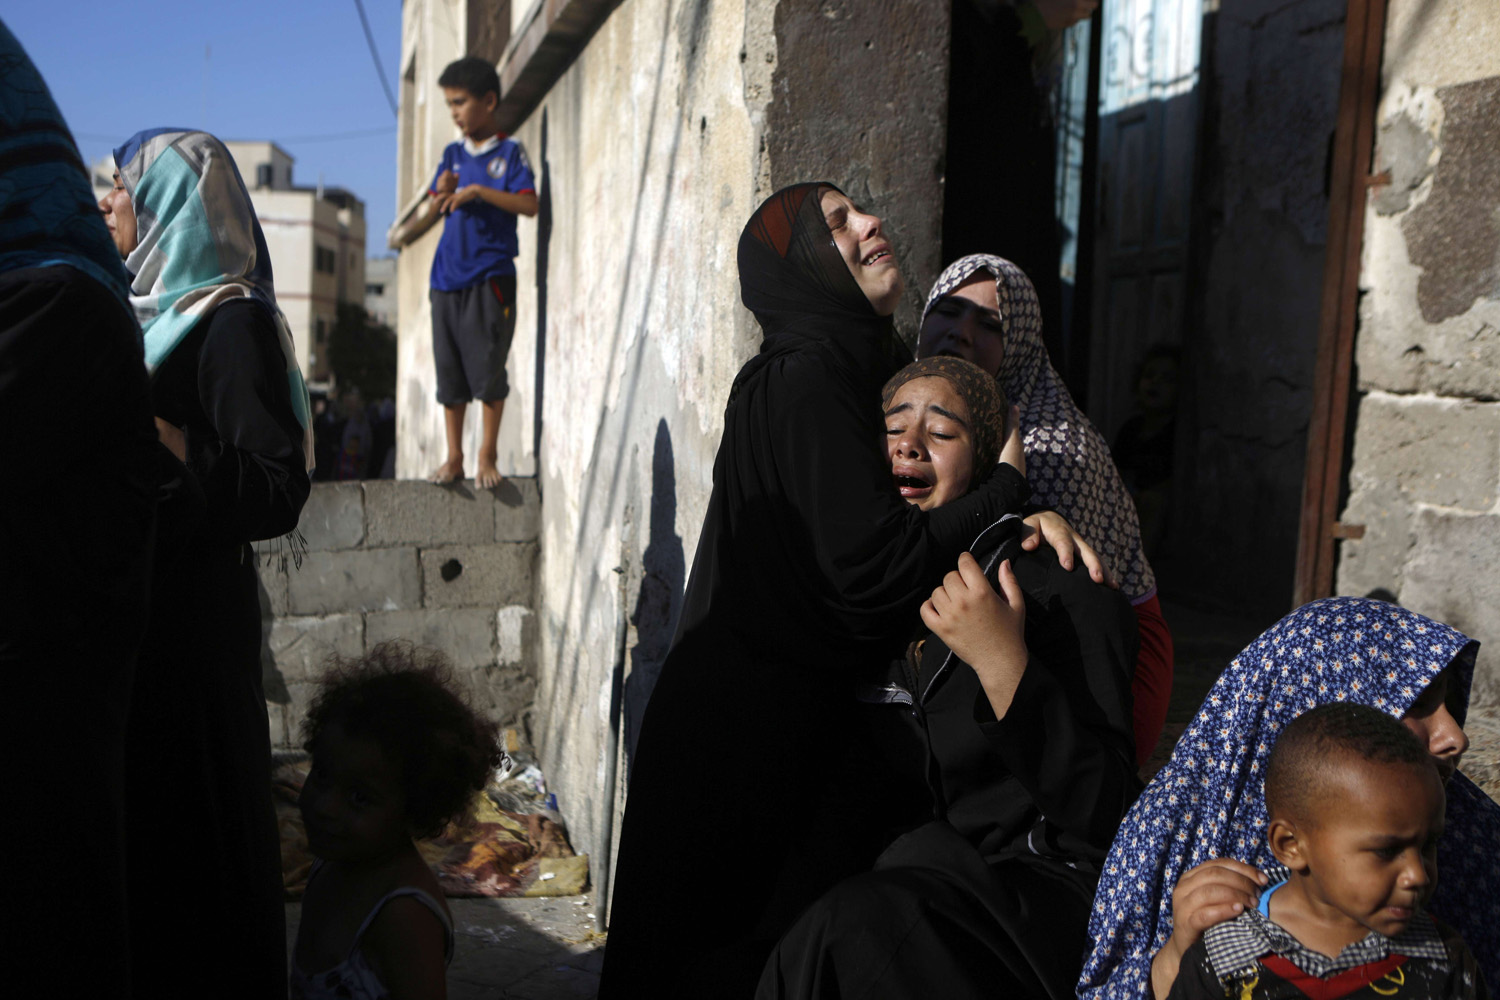 Jul. 16, 2014. Palestinian women react during the funeral of four boys, all from the Bakr family, killed during Israeli shelling, in Gaza City.